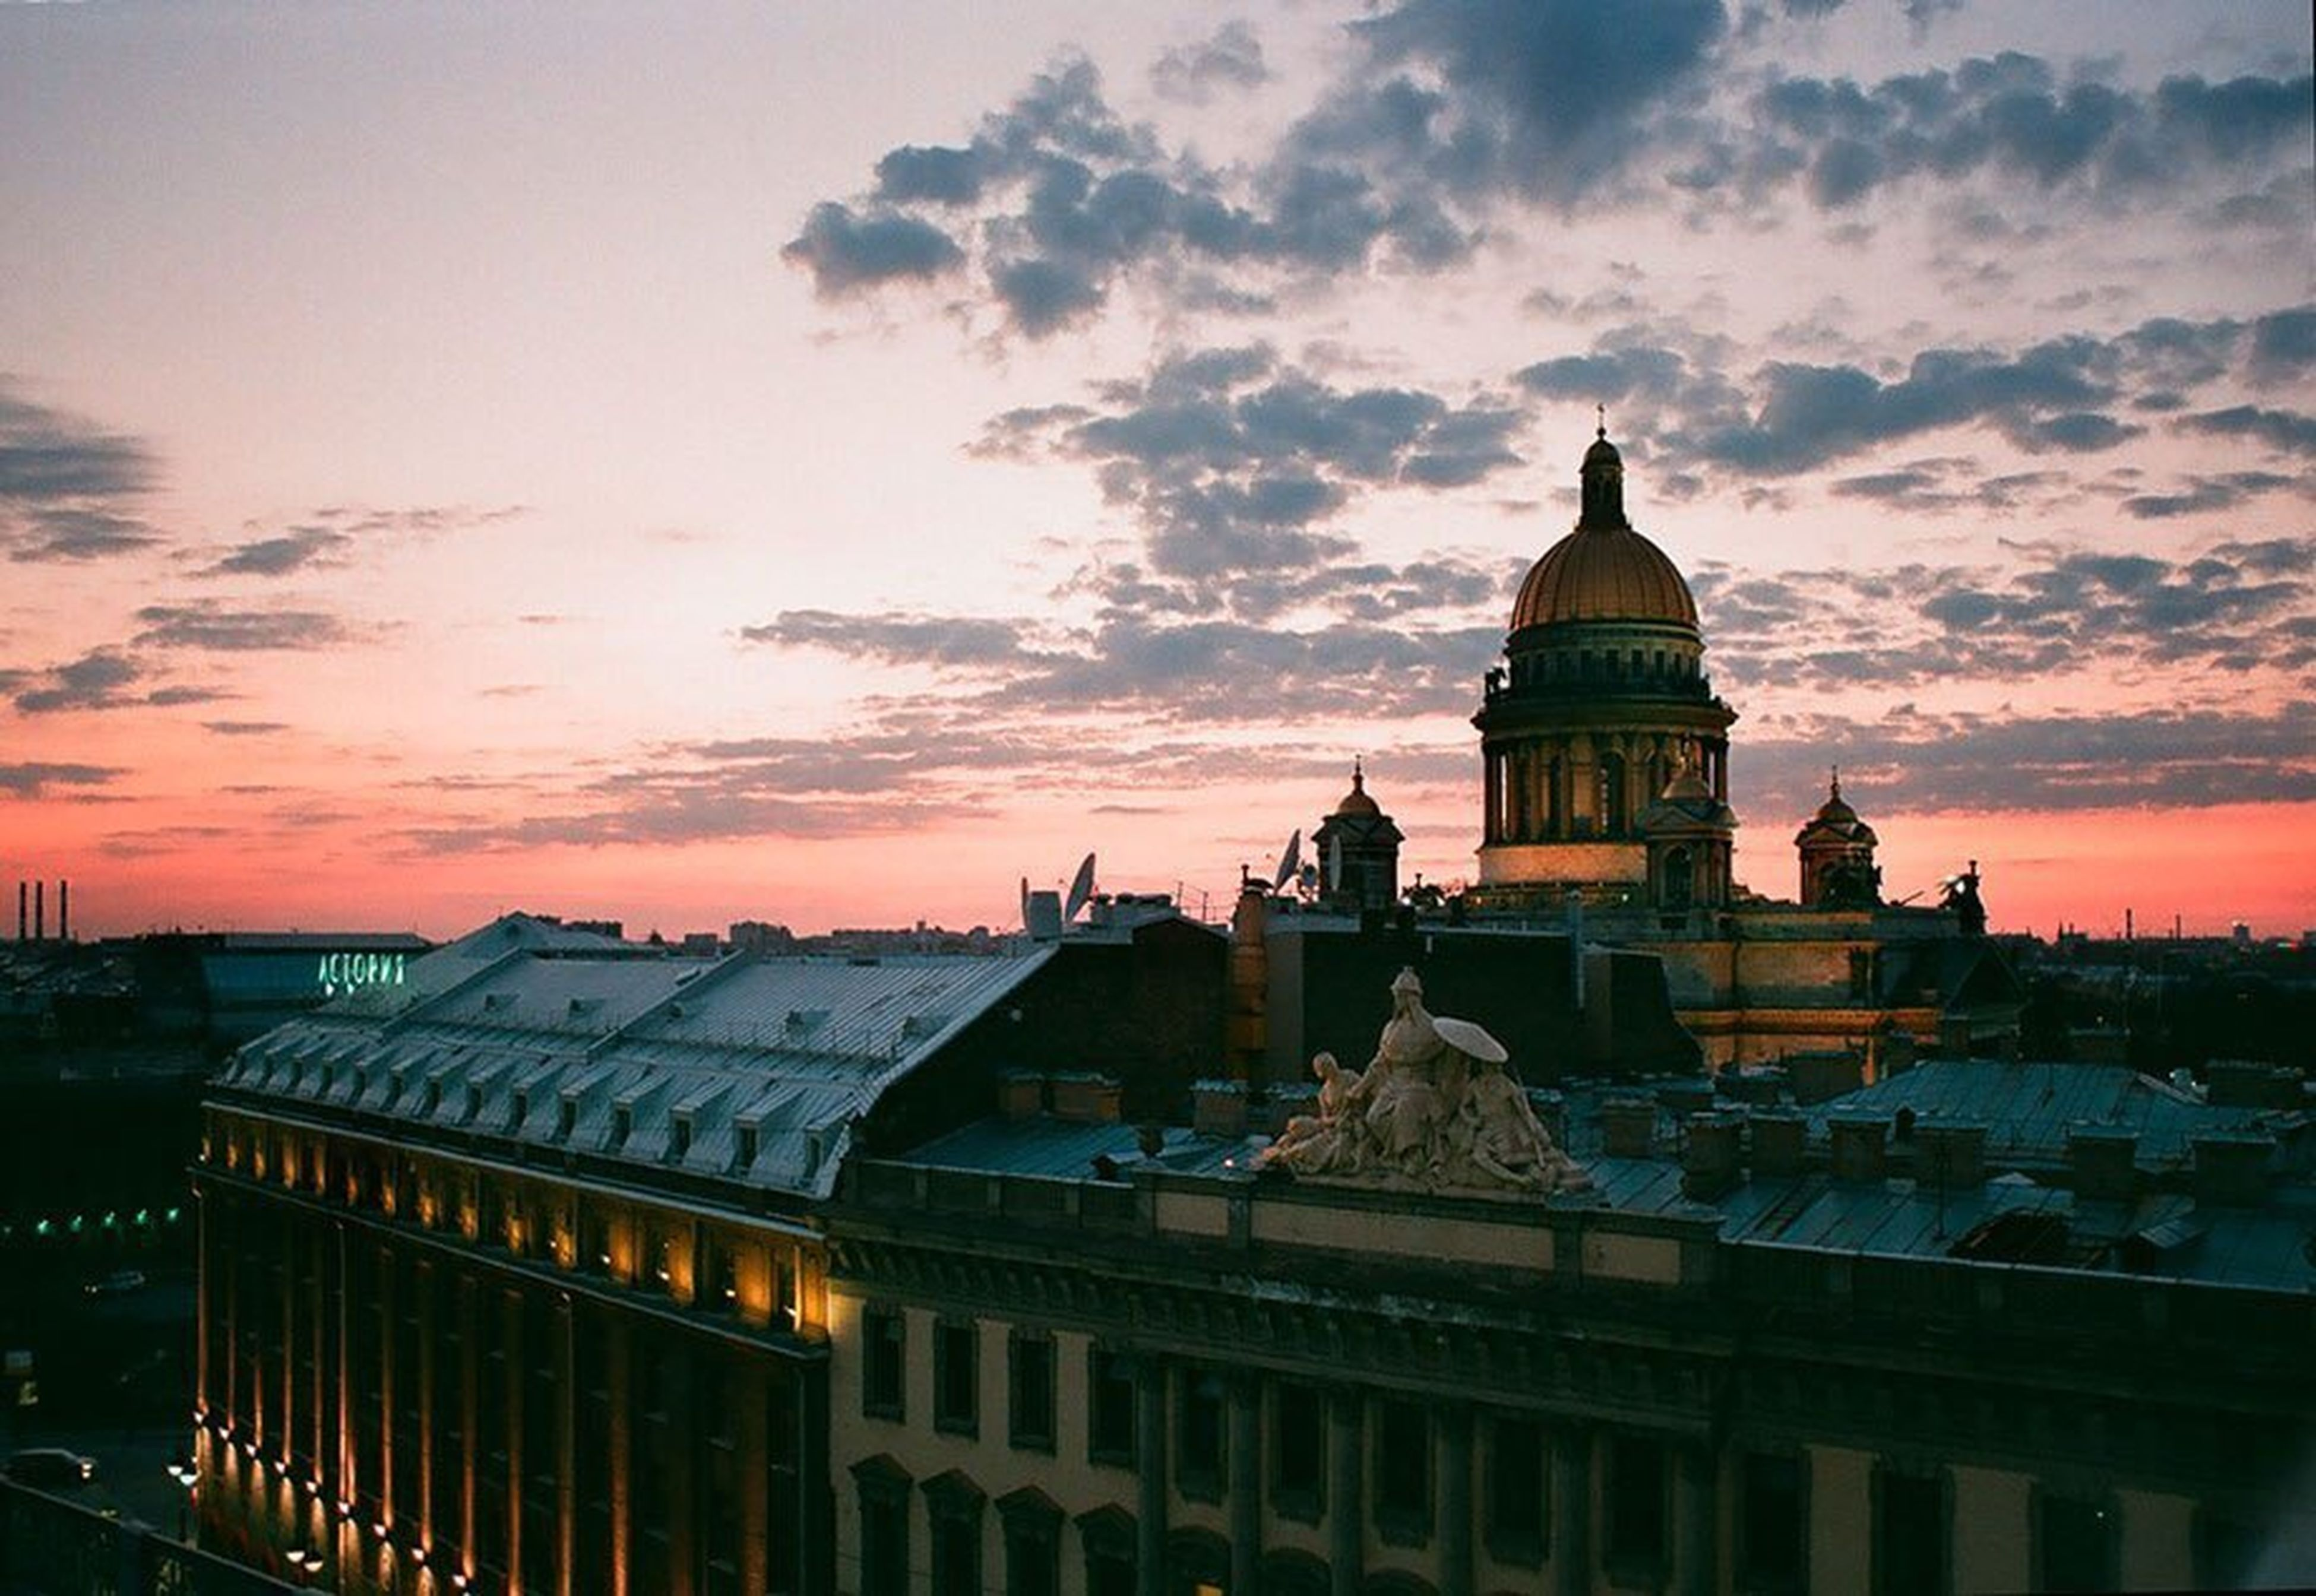 architecture, building exterior, sunset, built structure, sky, cloud - sky, orange color, cloudy, city, dusk, dome, cloud, place of worship, roof, religion, silhouette, outdoors, dramatic sky, spirituality, residential structure